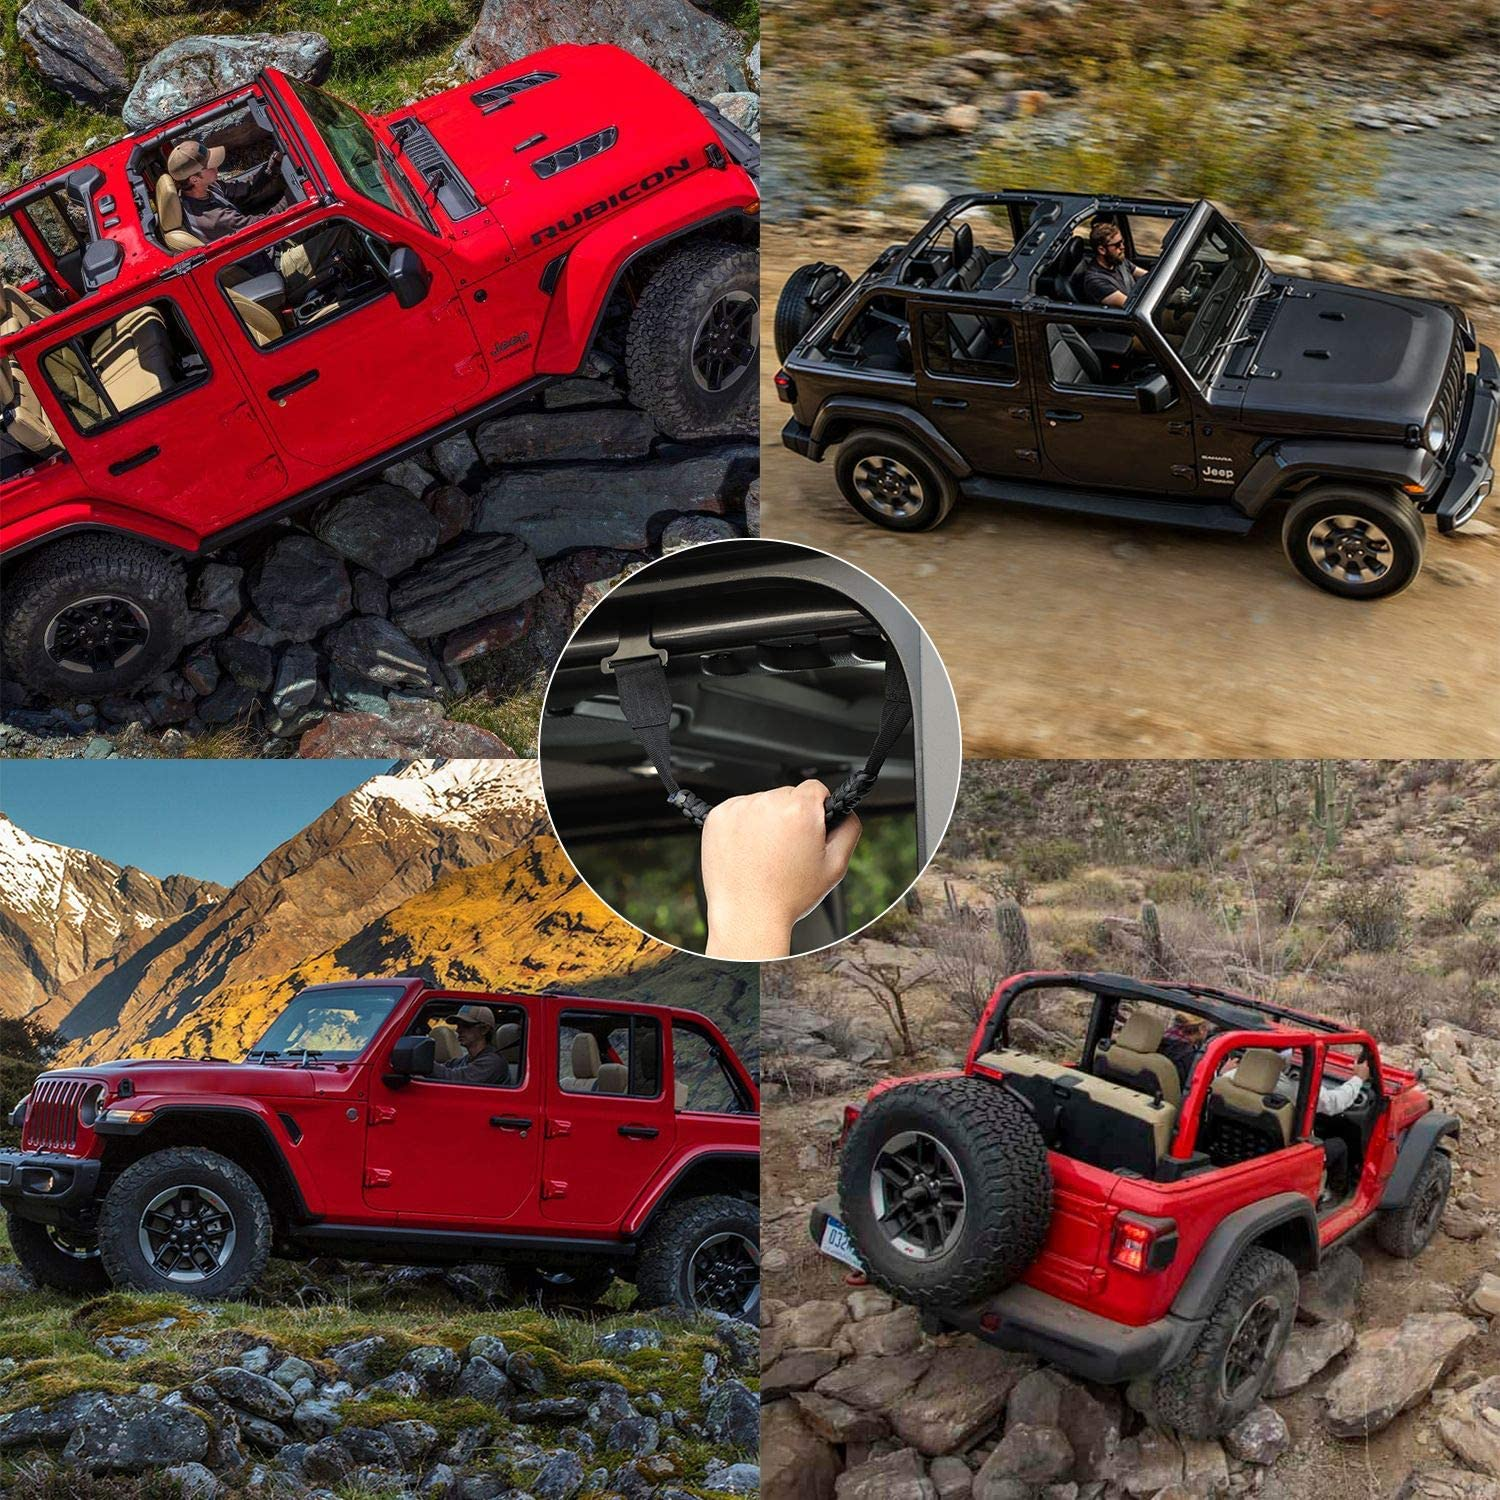 NOT FIT Power Top JeCar for Jeep Grab Handles 4 Pack Front /& Rear Grab Bars for 2018 2019 2020 Jeep Wrangler JL JLU /& 2020 Jeep Gladiator JT